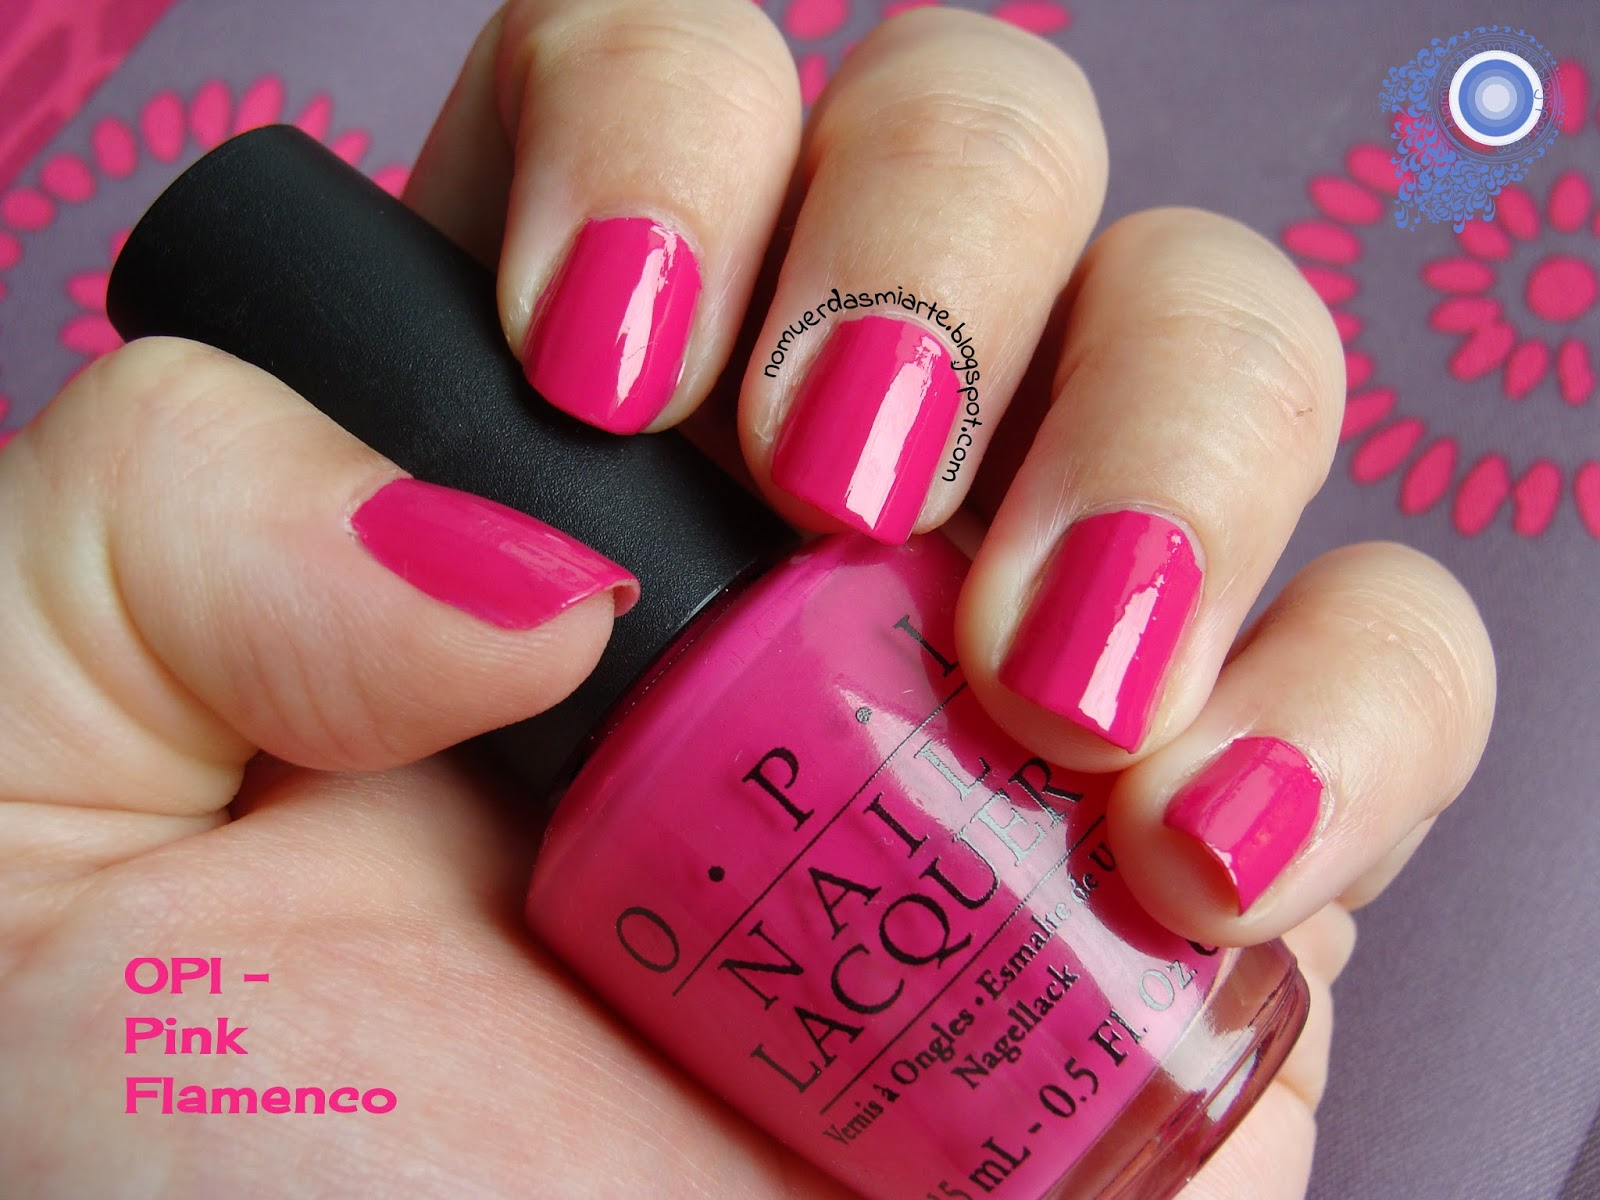 Swatch Pink Flamenco de OPI